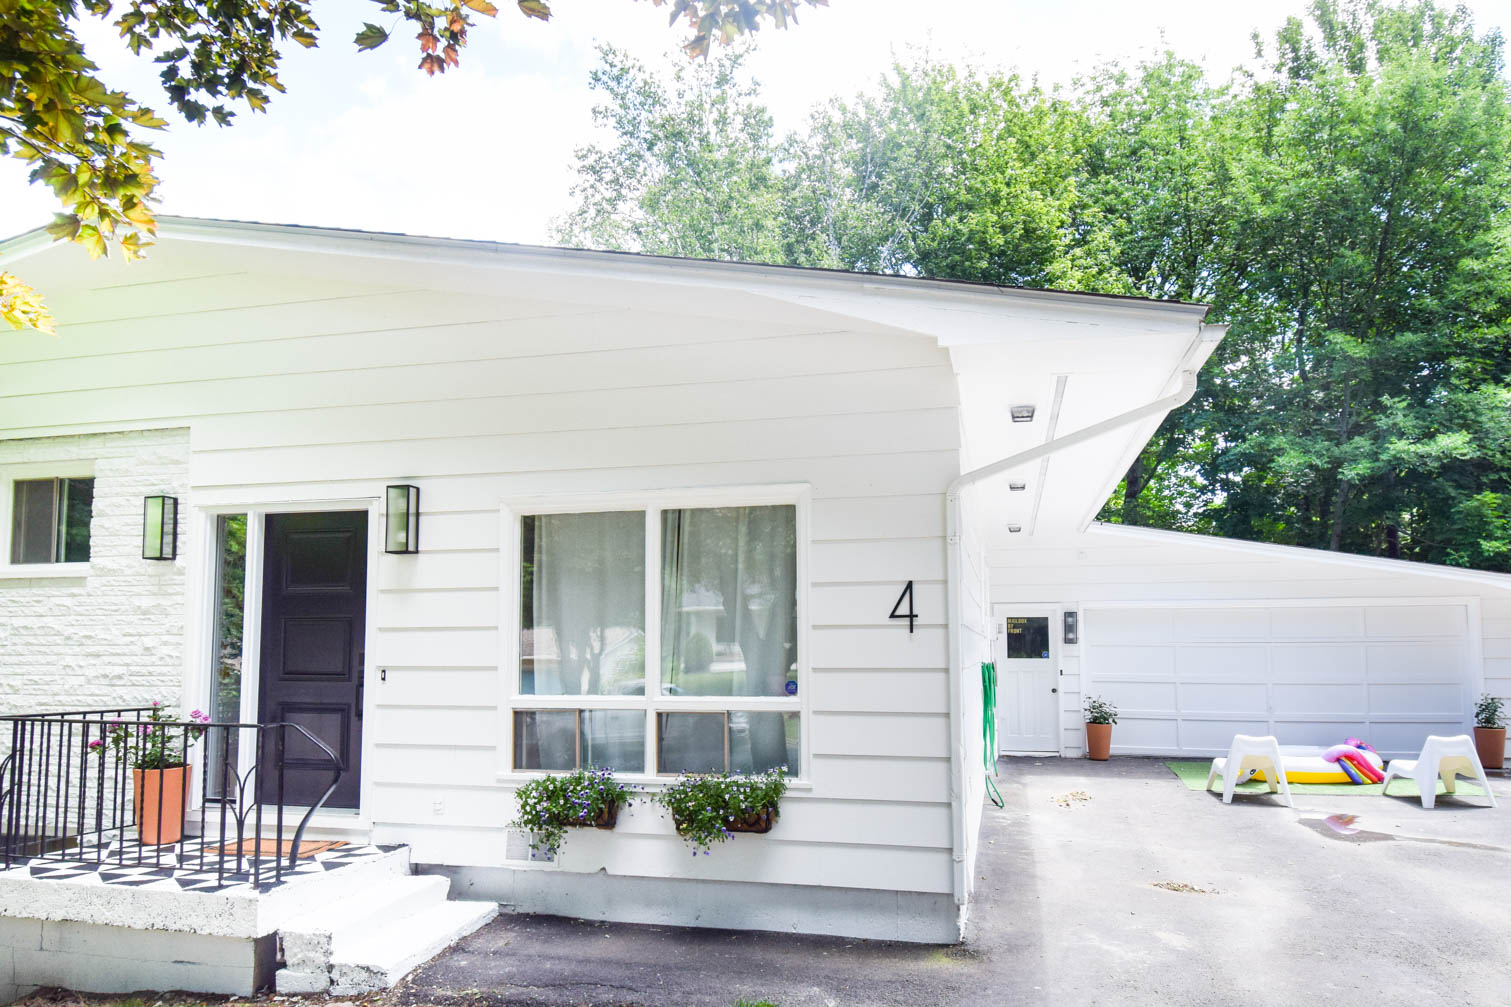 Come see our mid century modern exterior makeover now that's complete! New paint, new door, new vibes - who dis? Come see the process and the decisions behind the look, and grab resources!